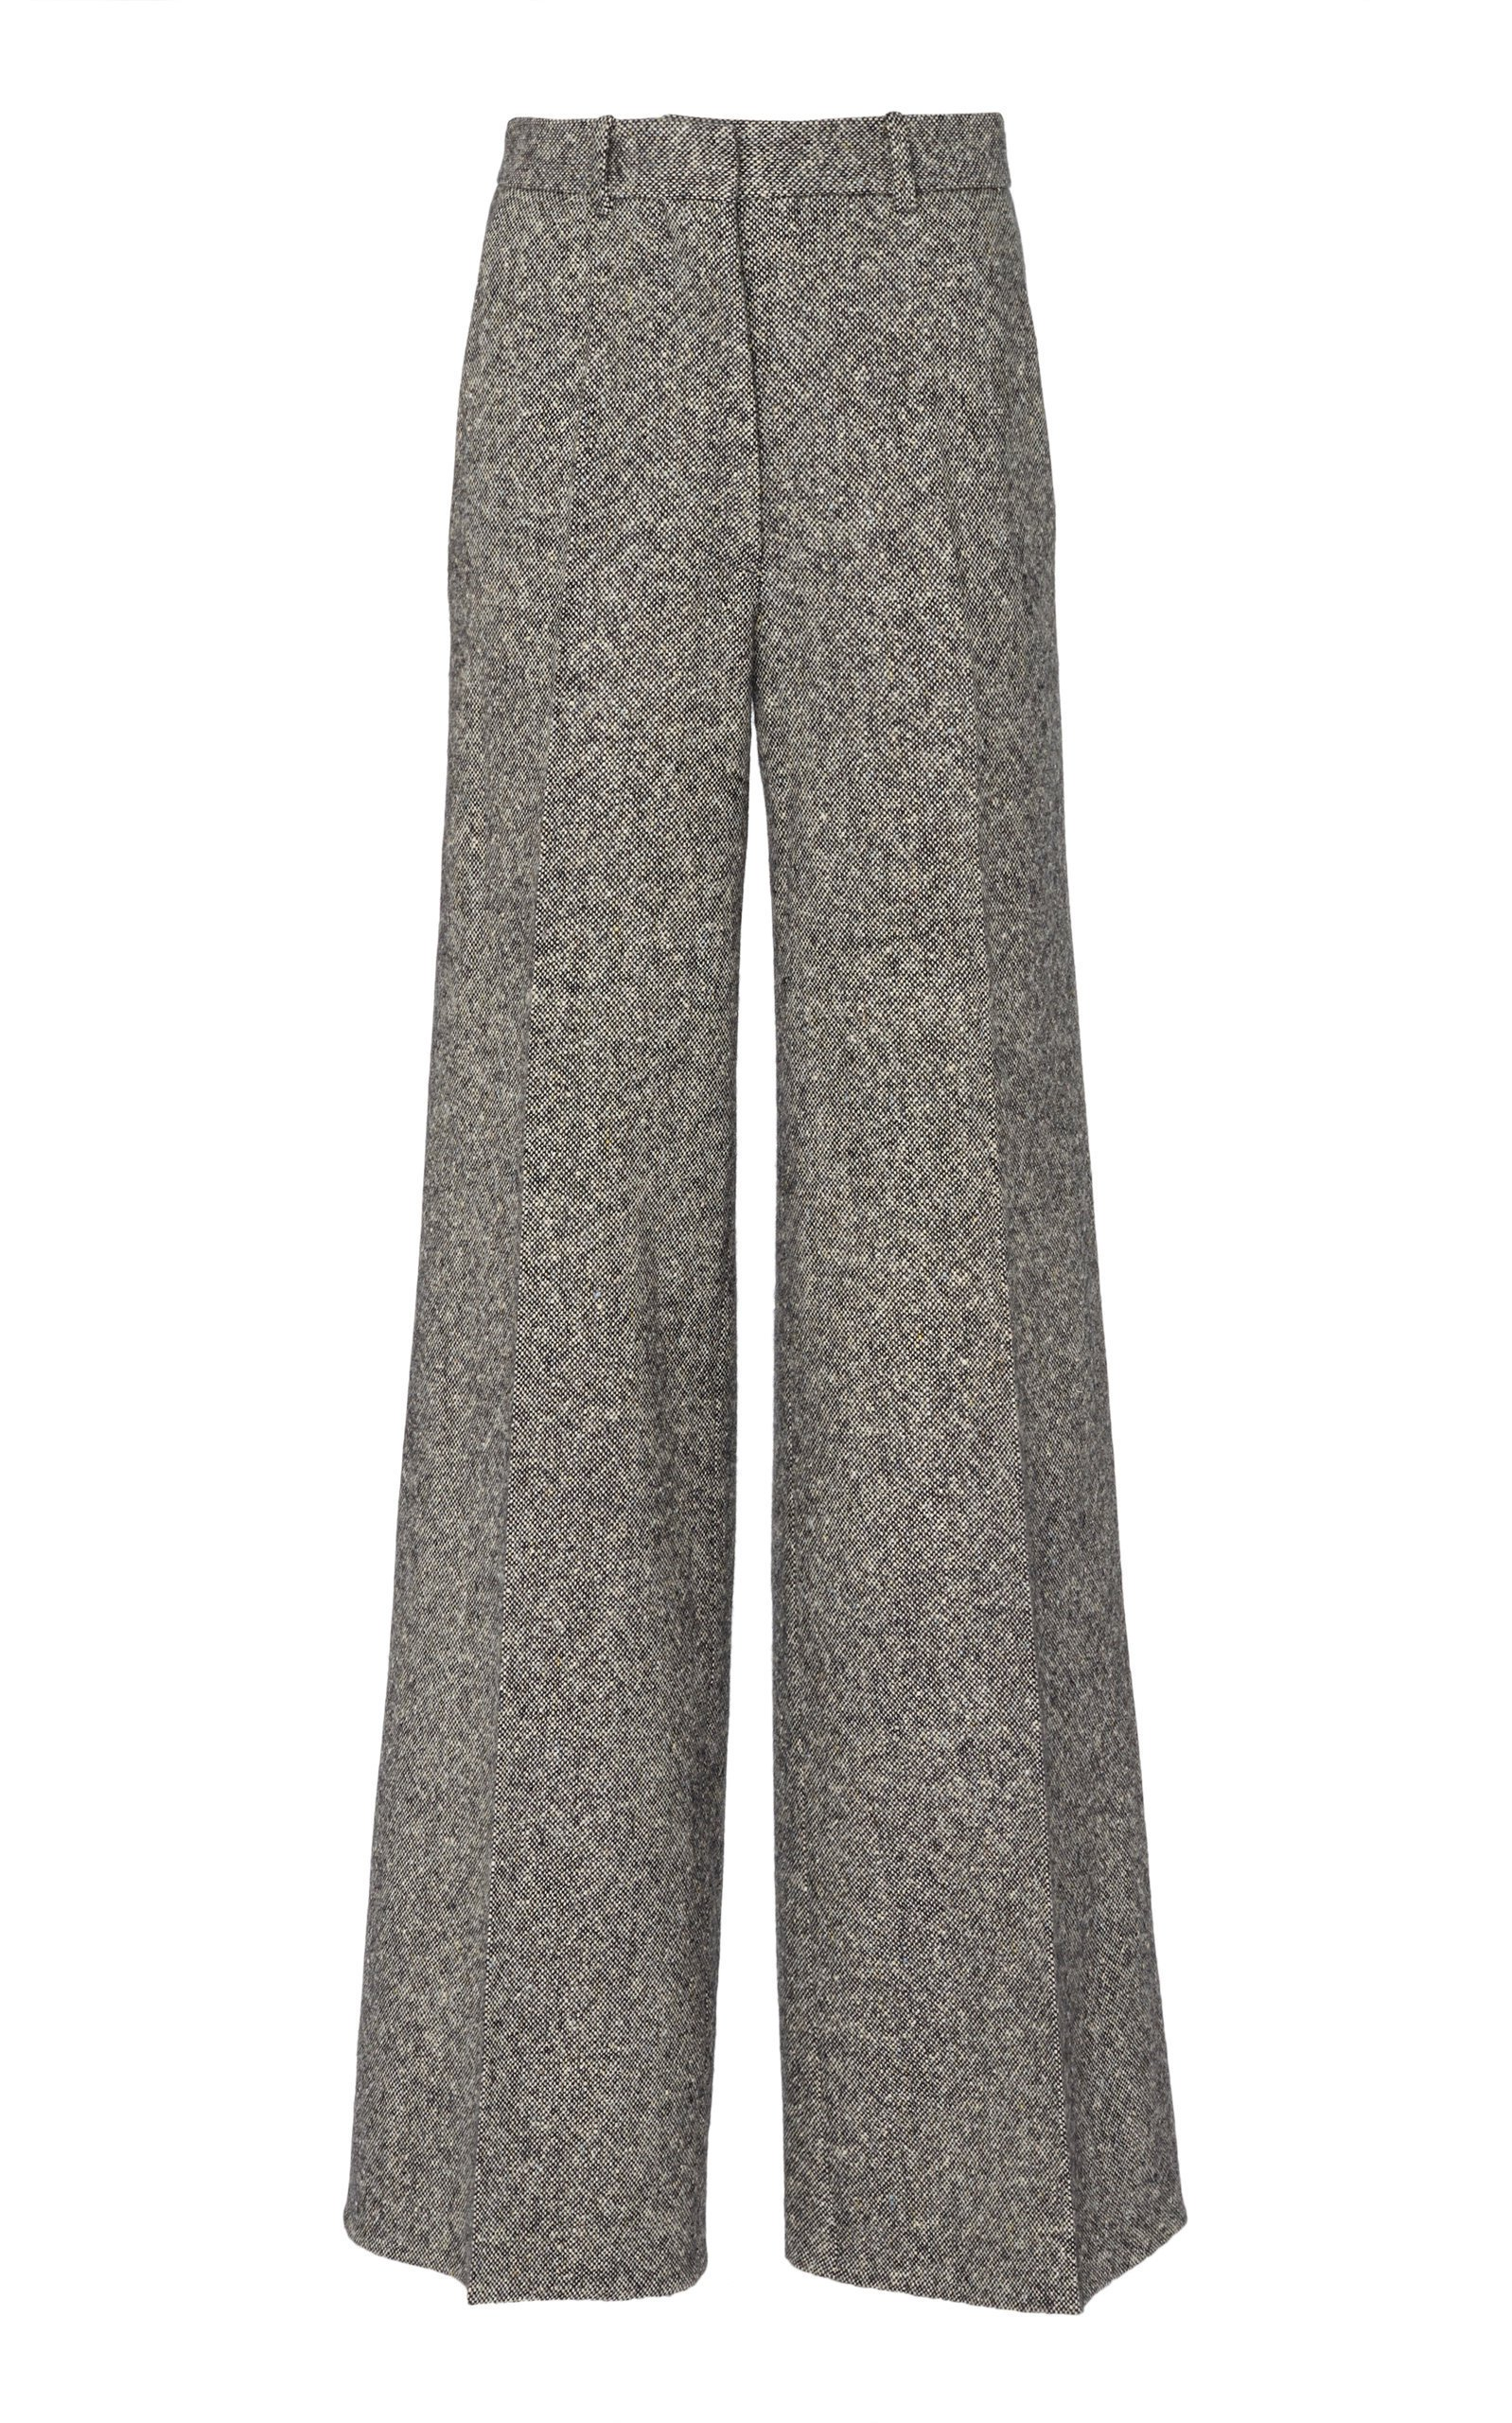 Victoria Beckham Wool-Tweed Wide-Leg Pants Size: 6